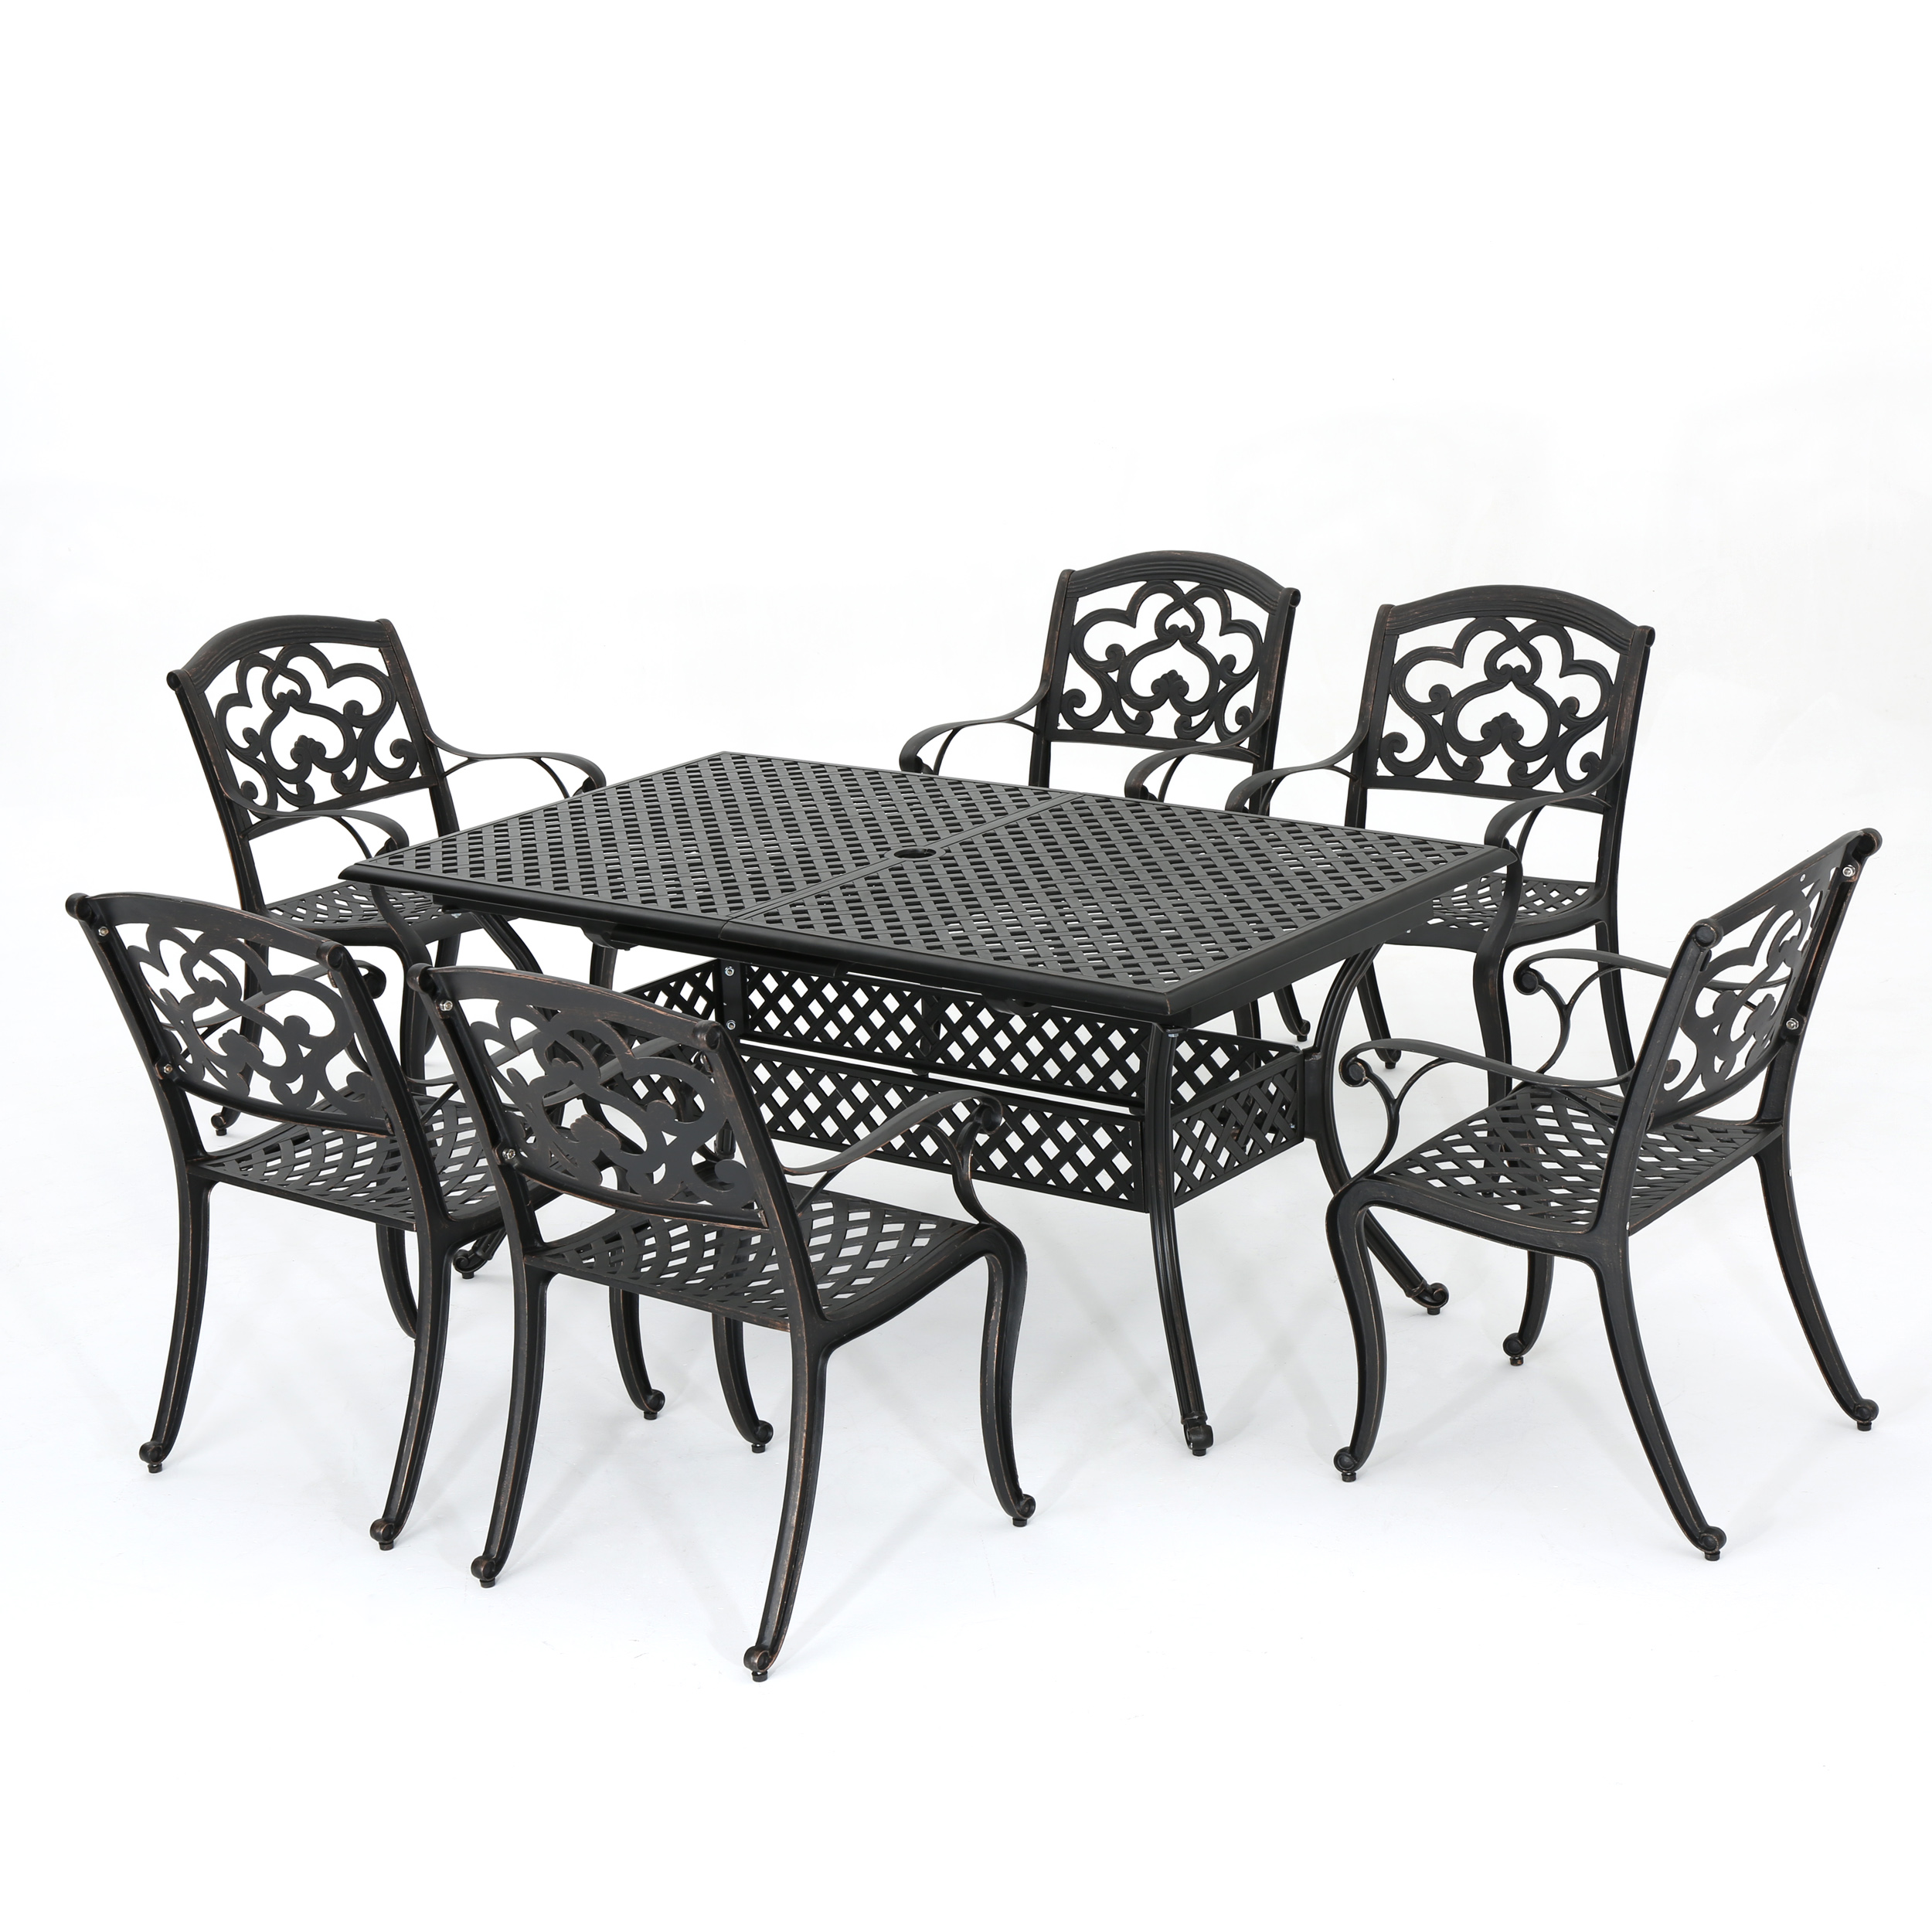 Ariel Outdoor 7 Piece Cast Aluminum Dining Set with Leaf, Shiny Copper Finish